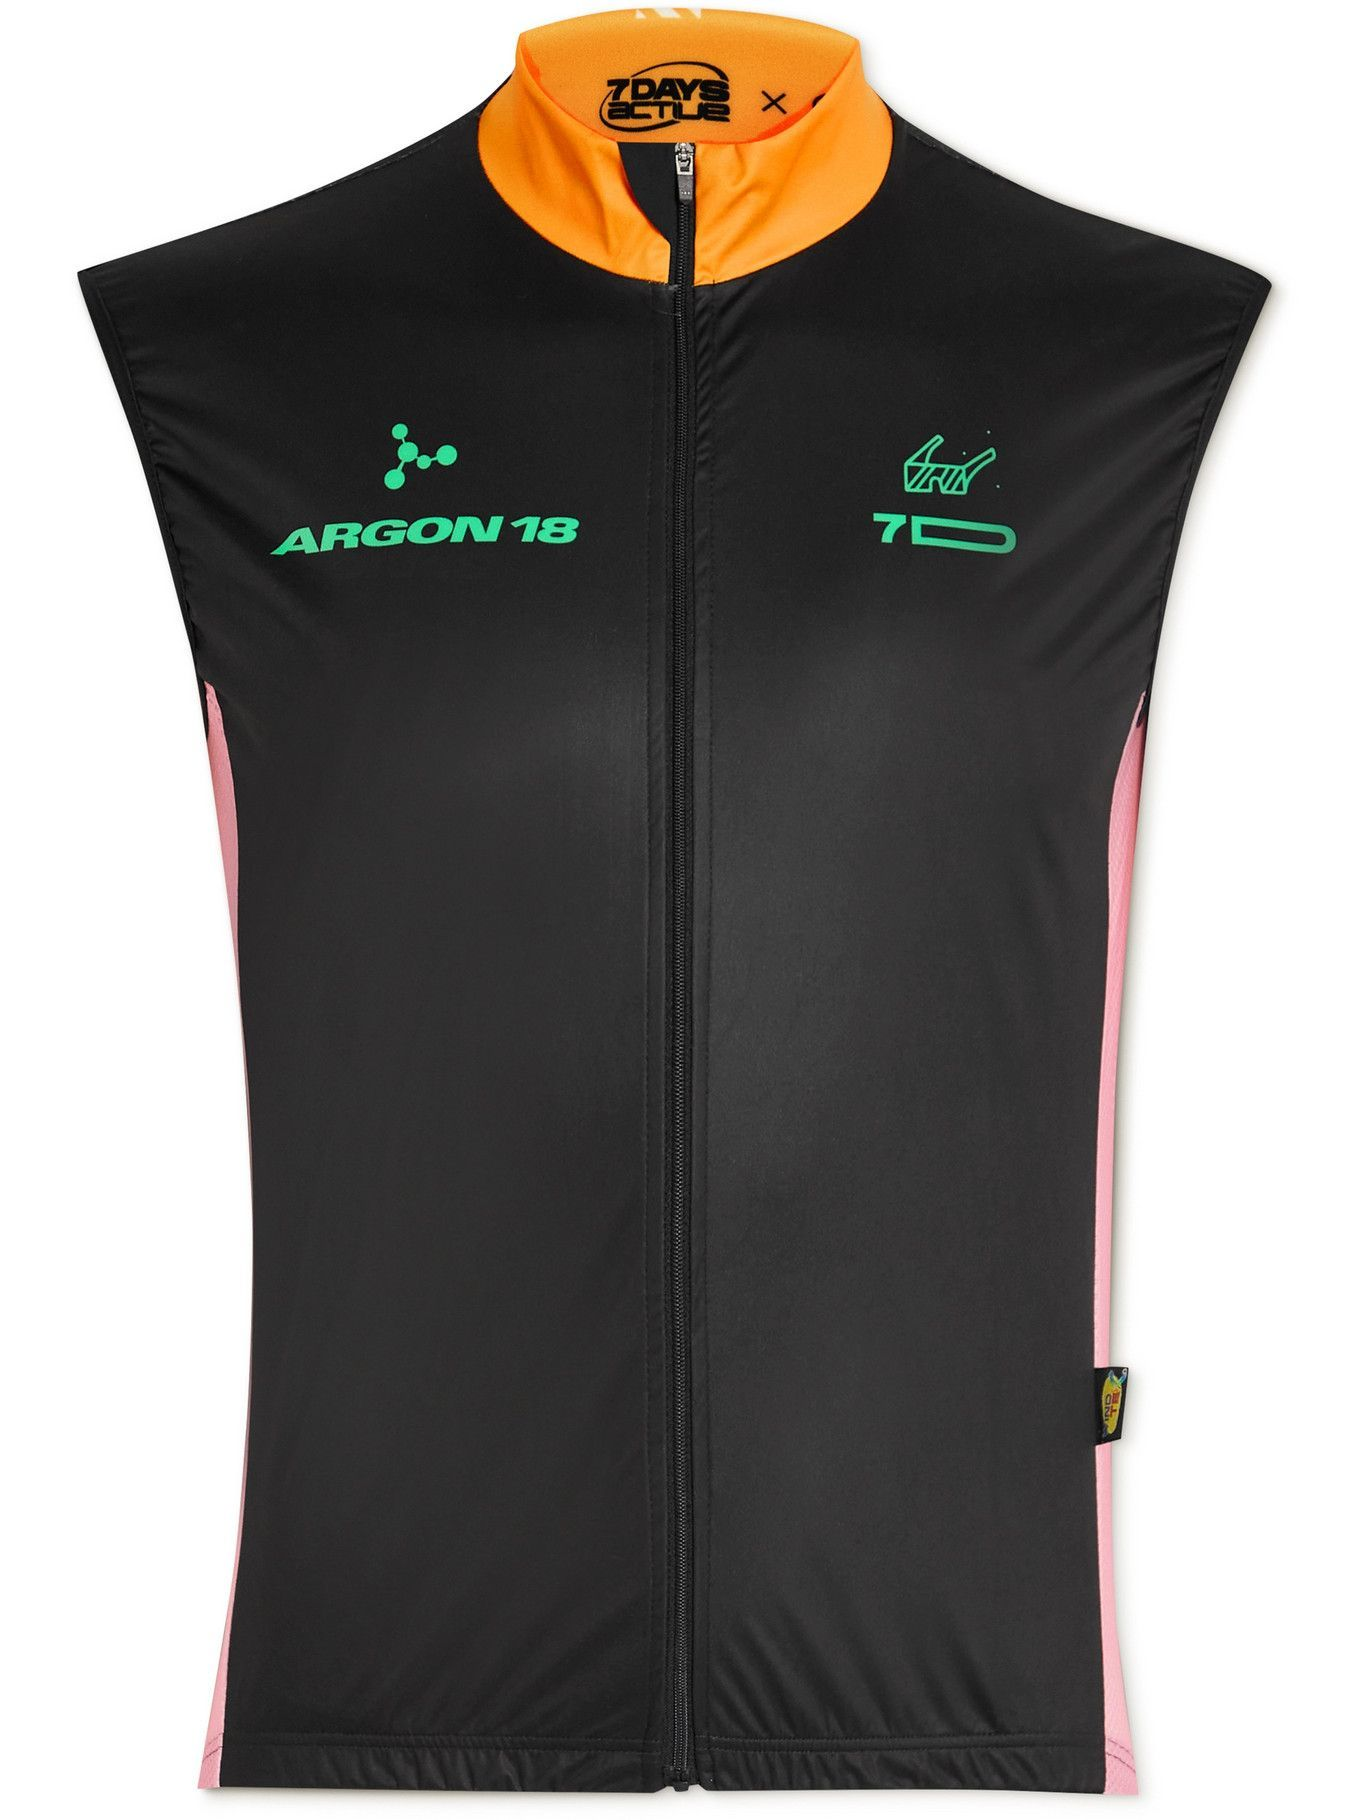 Photo: 7 DAYS ACTIVE - Argon 18 Colour-Block Mesh-Panelled Cycling Jersey - Black